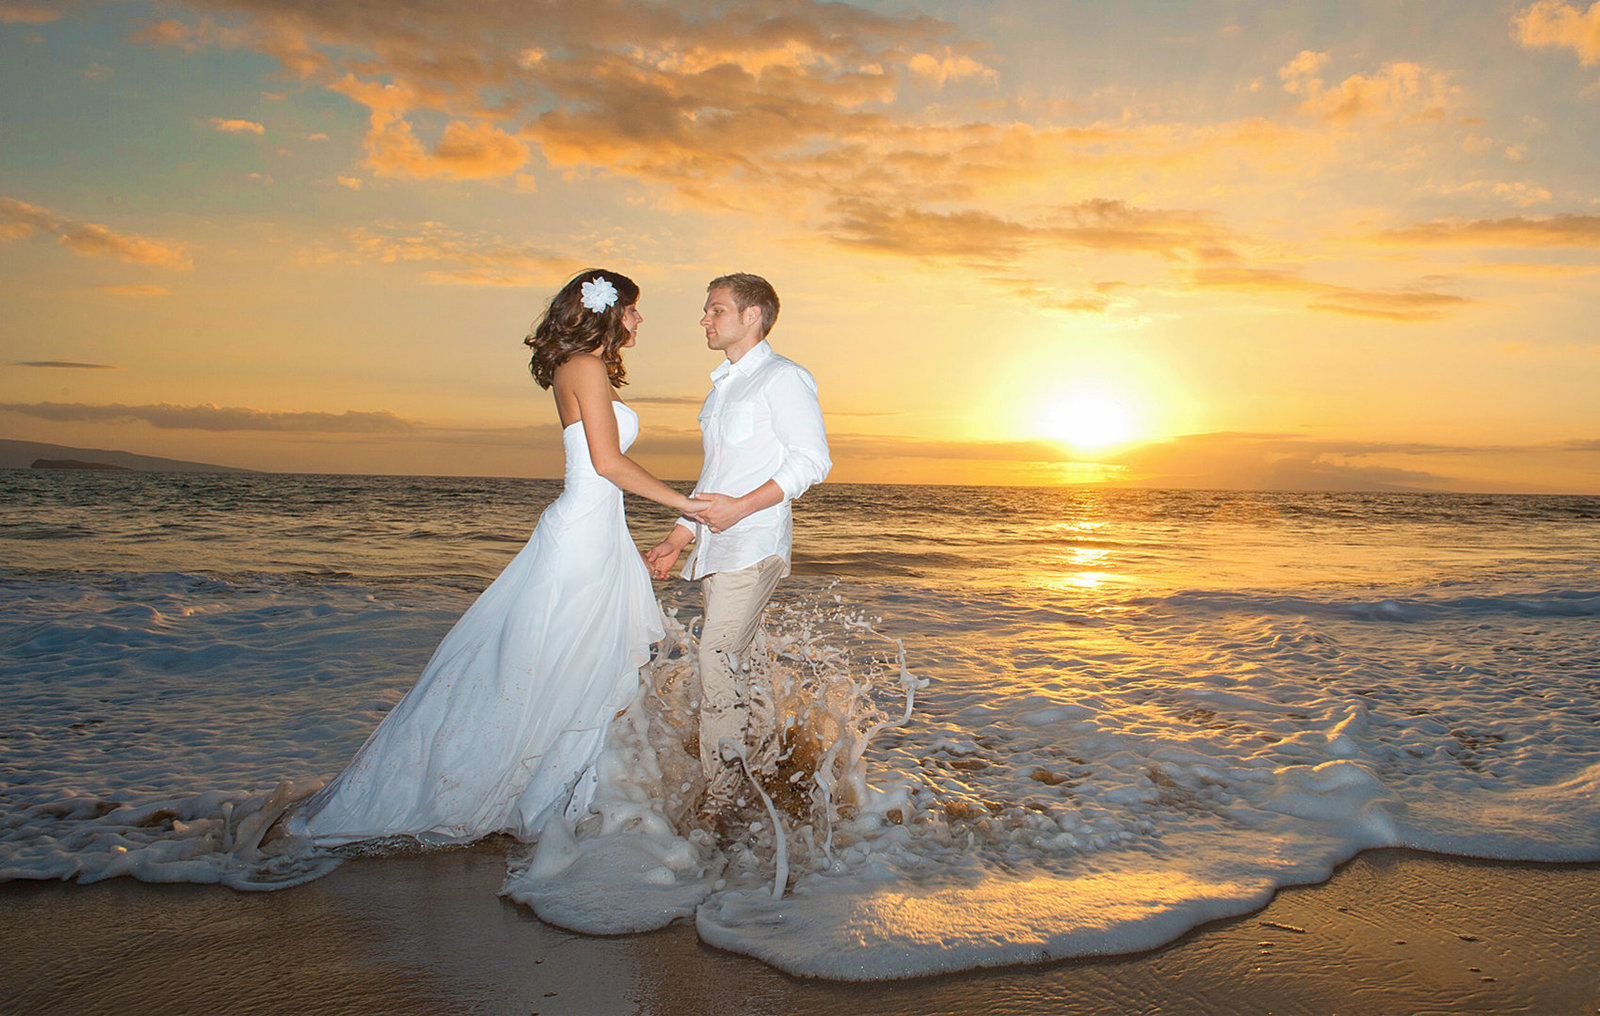 Maui wedding planners | Oahu wedding planners | Kauai wedding planners | Big Island wedding planners